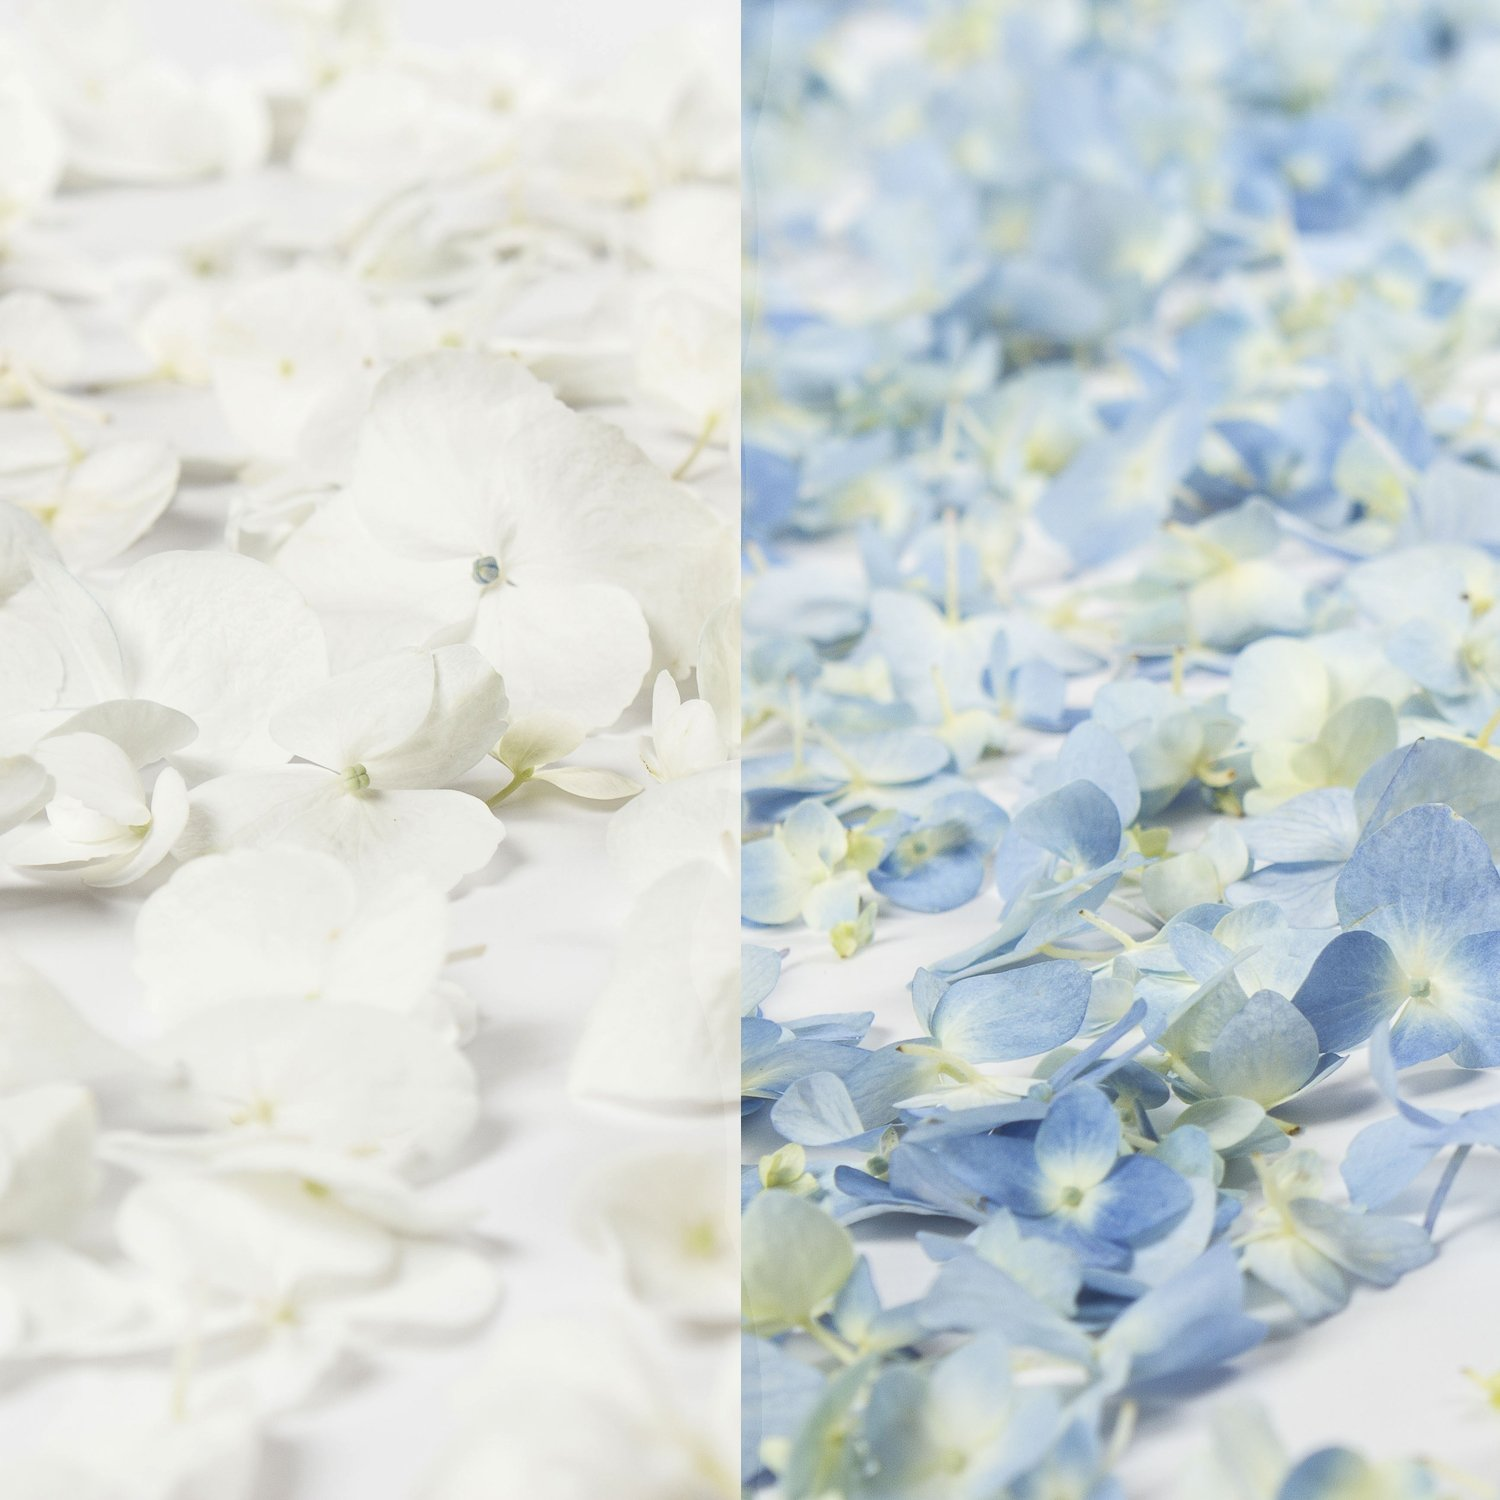 Farm Fresh Natural 1/2 white 1/2 blue Hydrangea Petals - 16 PK.